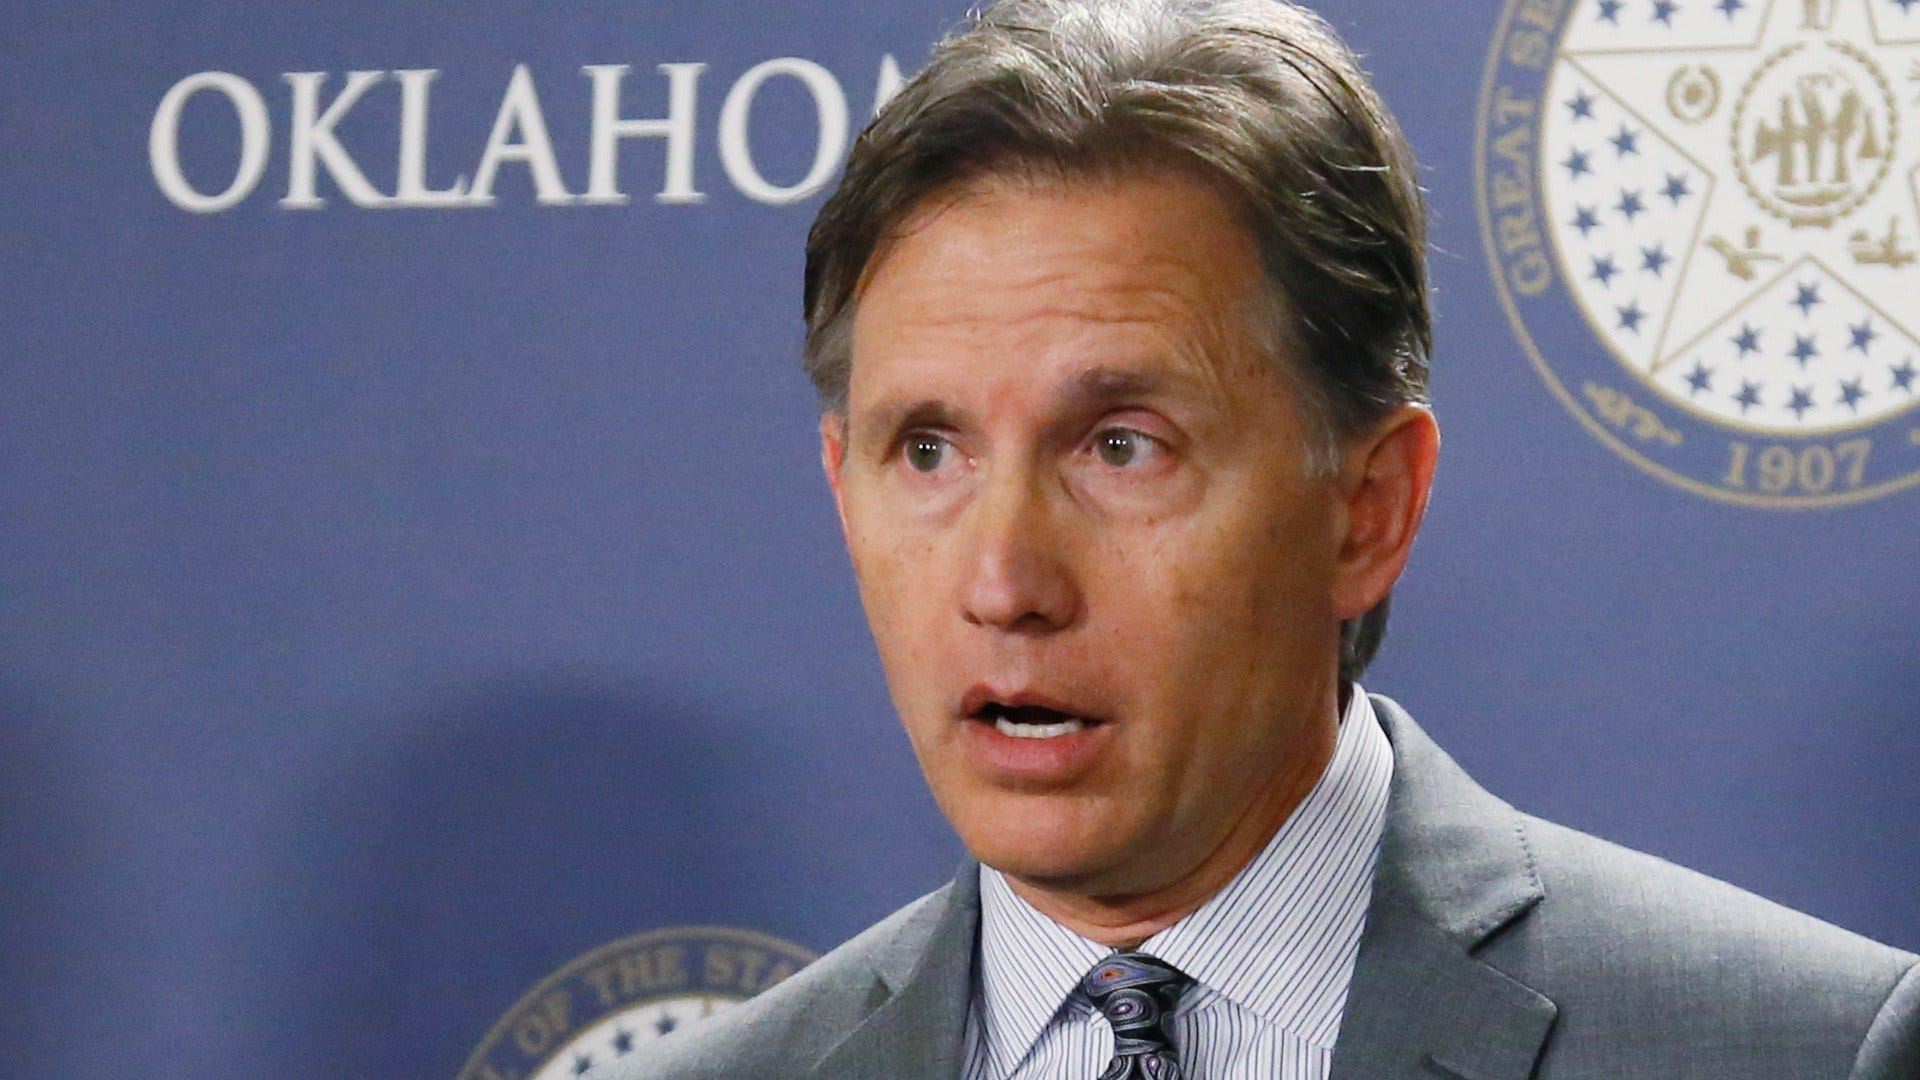 Oklahoma Attorney General Challenges Montana Supreme Court Ruling On Religious Liberties